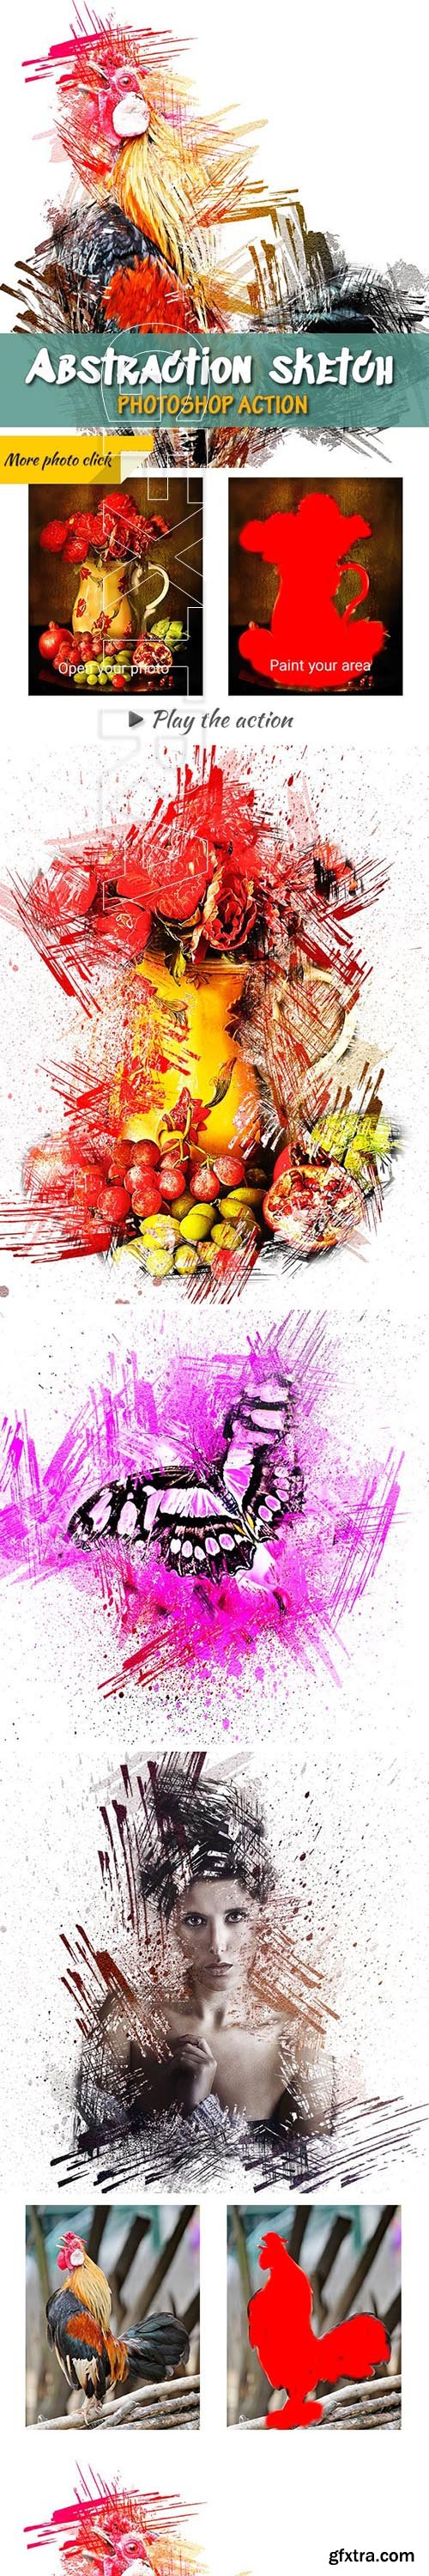 GraphicRiver - Abstraction Sketch Photoshop Action 23925030